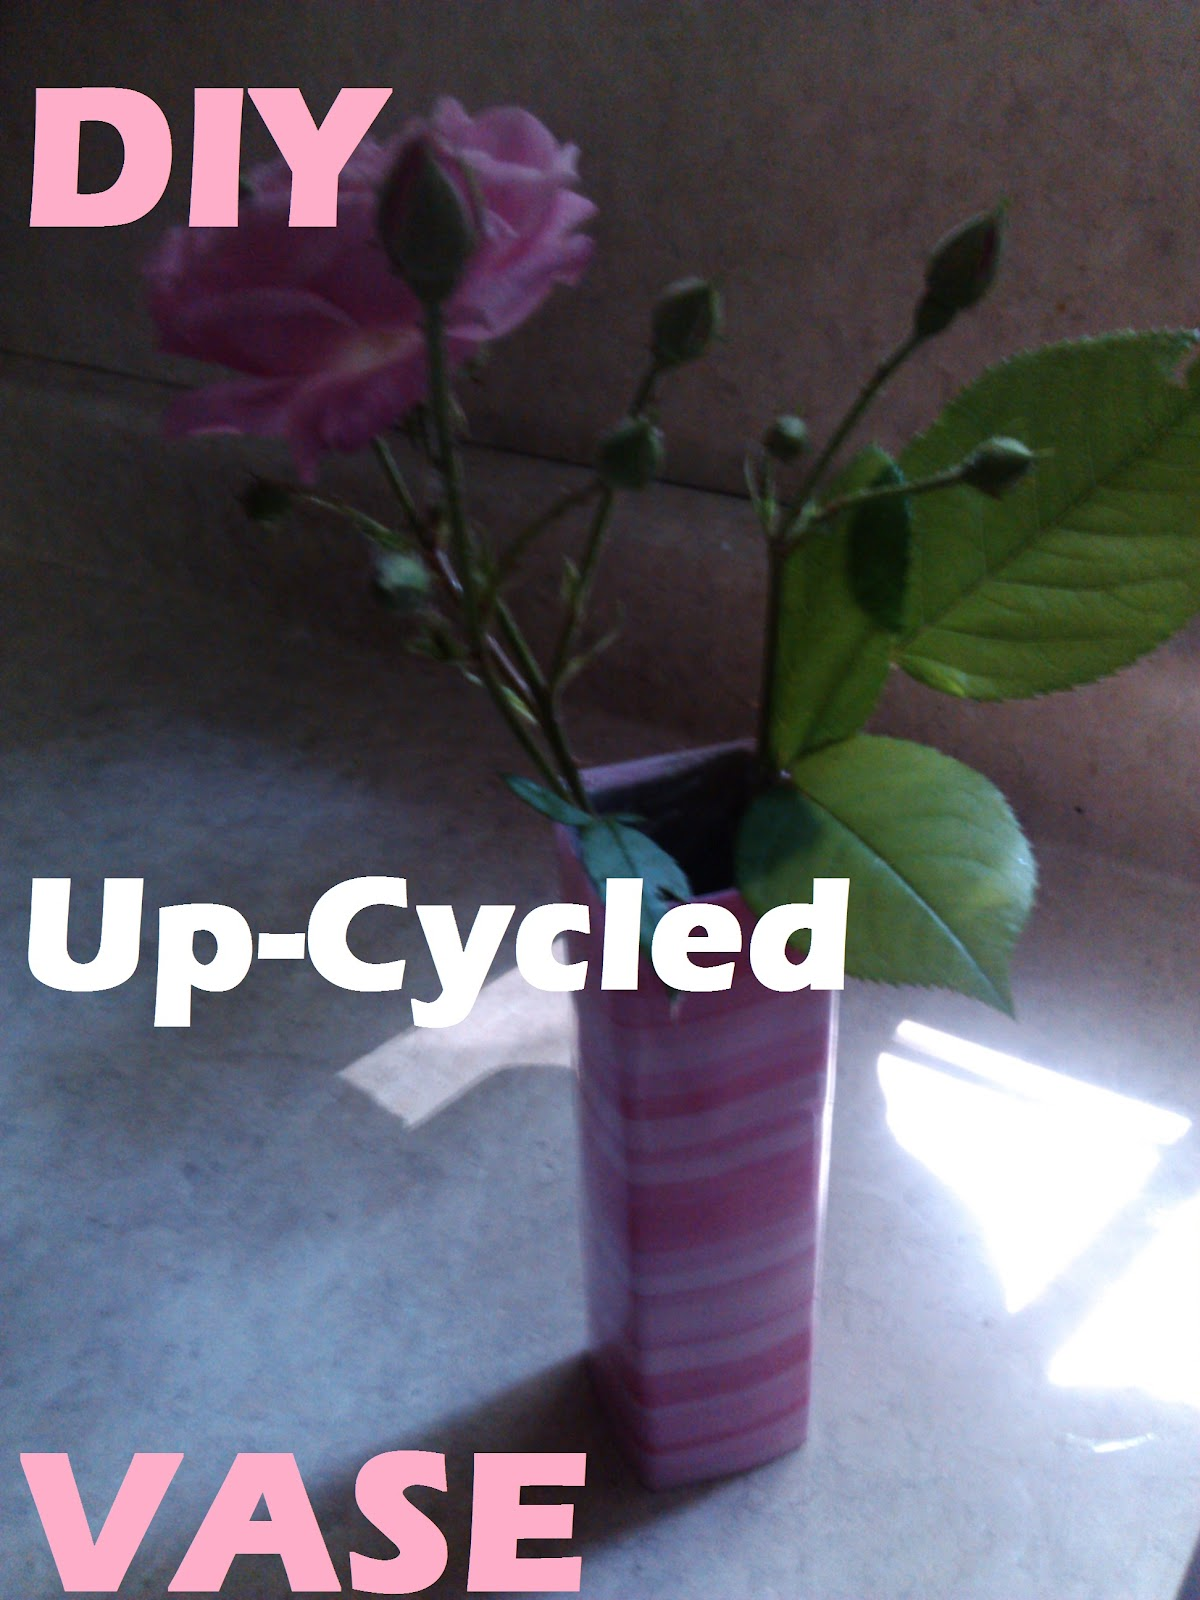 My American Confessions & My American Confessions: Friday: DIY Up-Cycled Paper Towel Roll into ...